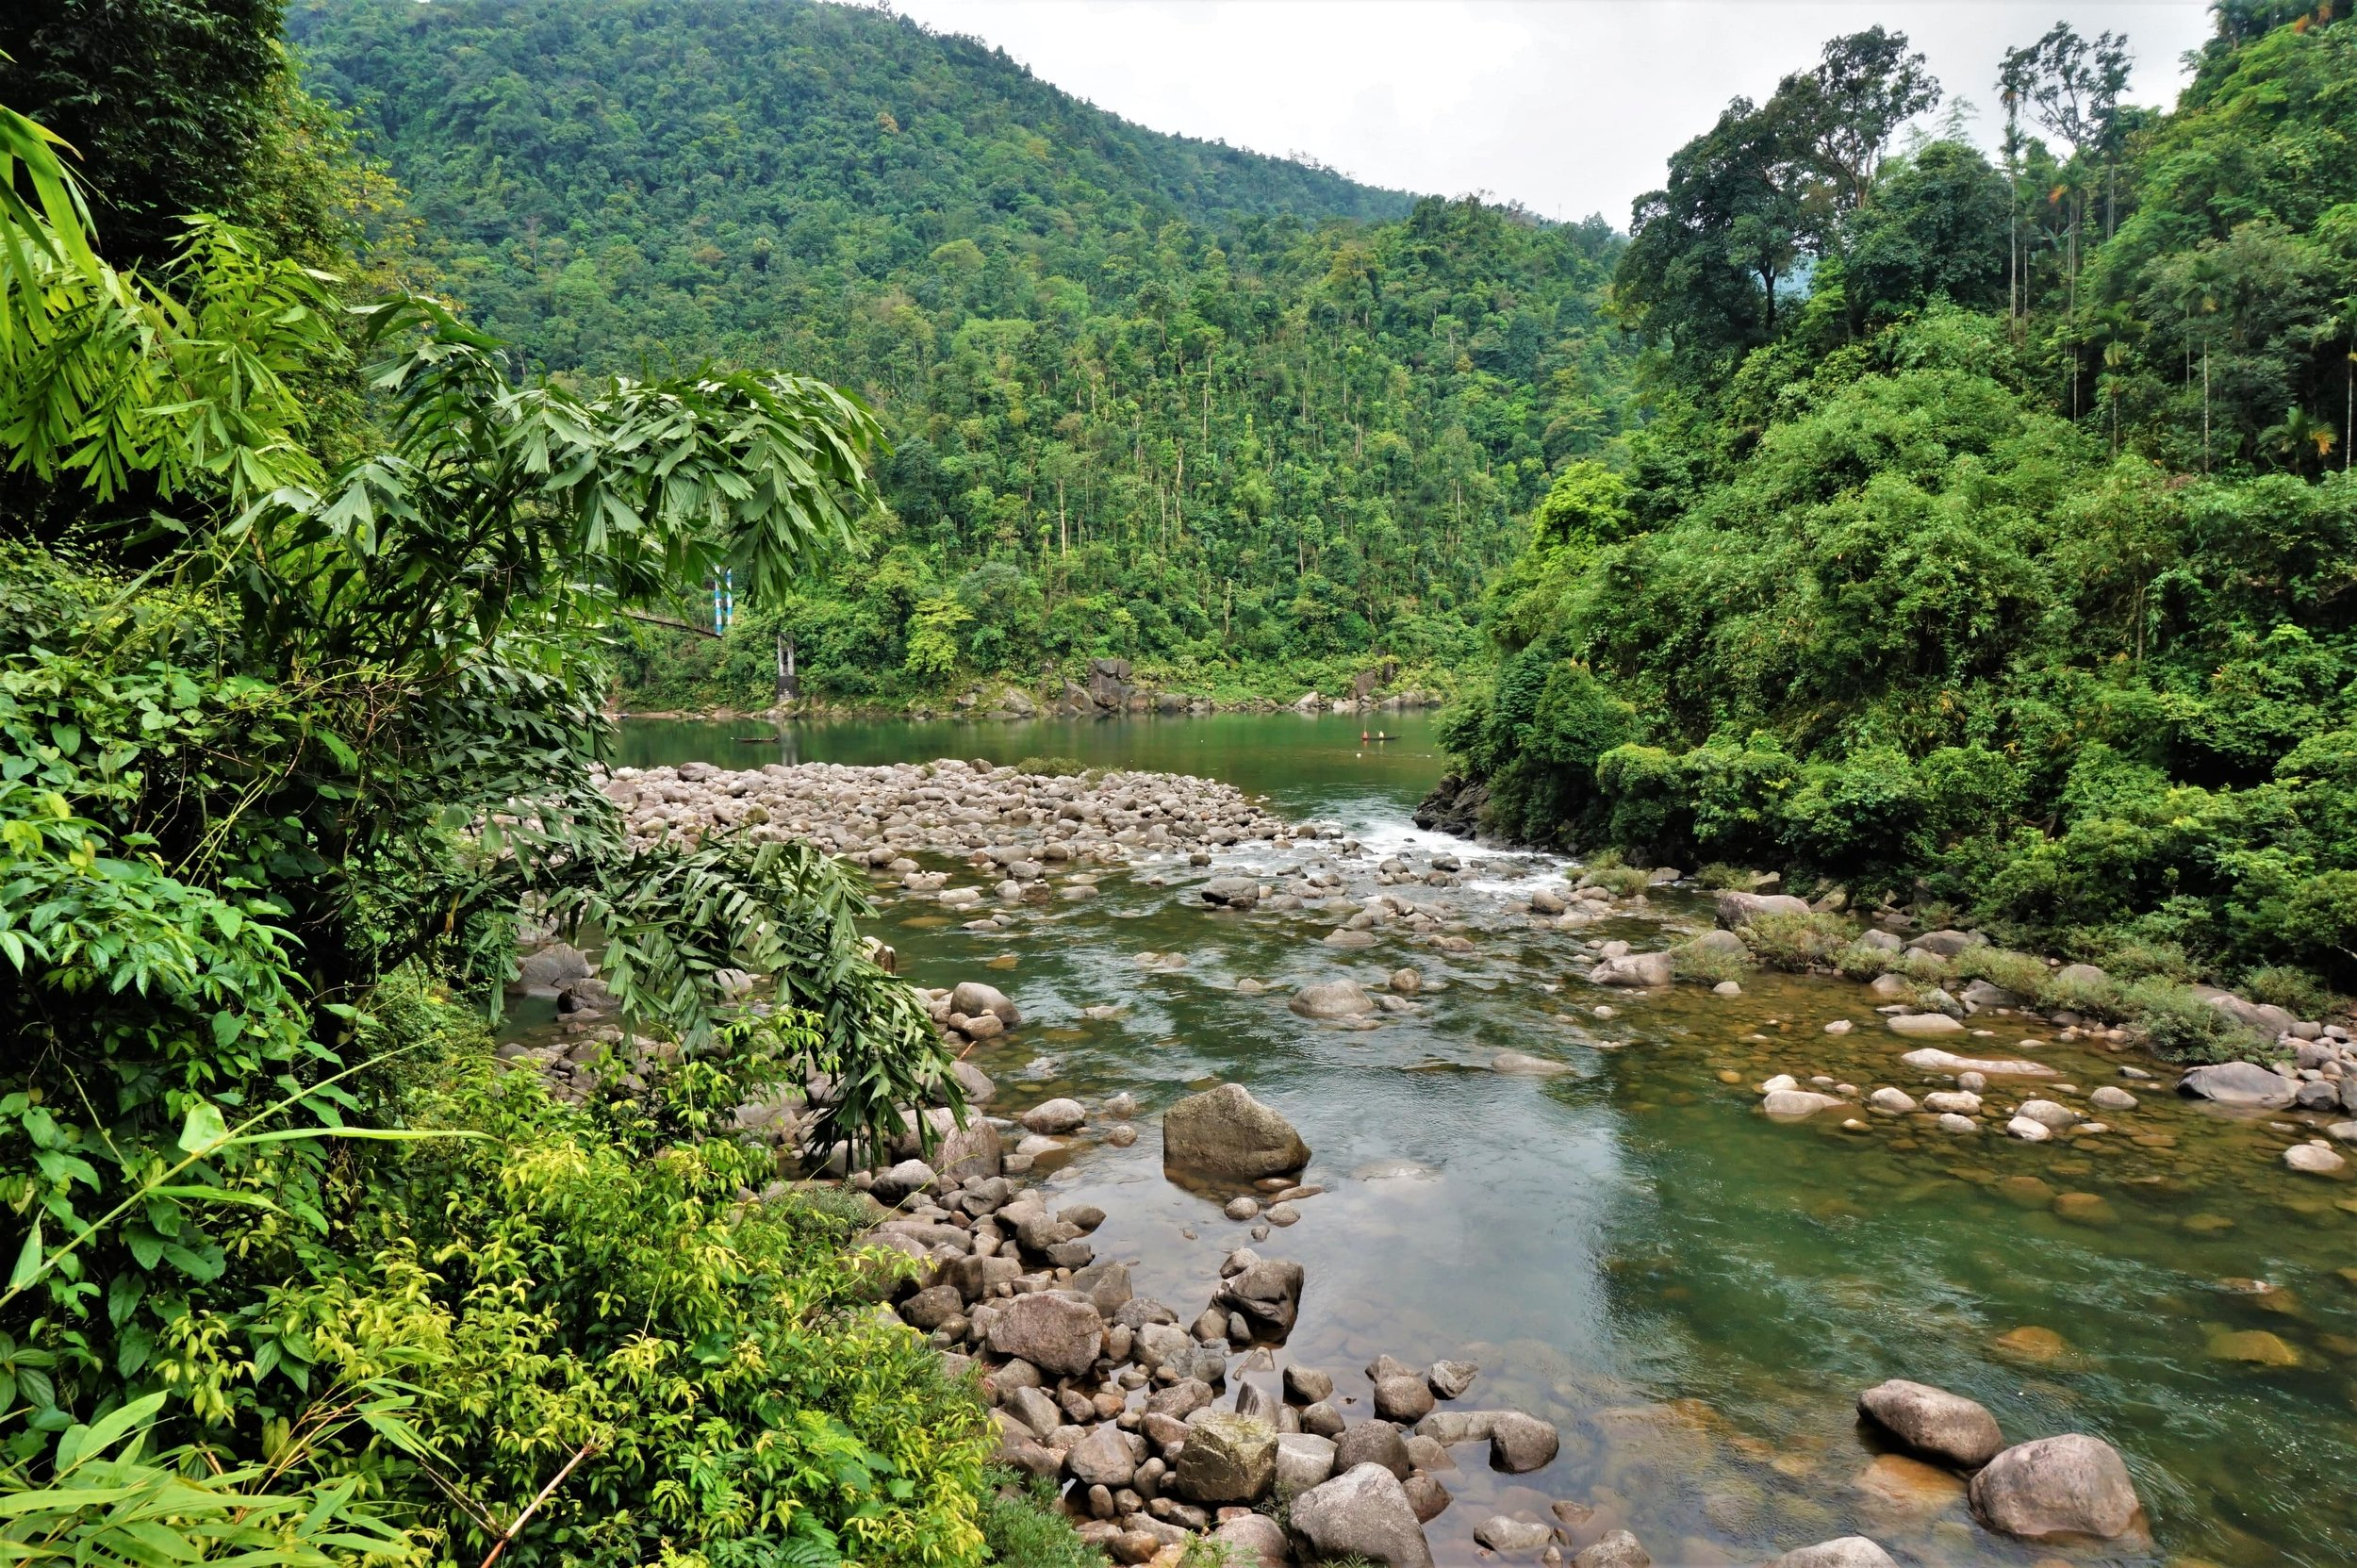 Backpacking in Meghalaya is one of the best things to do in India, North-East India is a must visit destination!